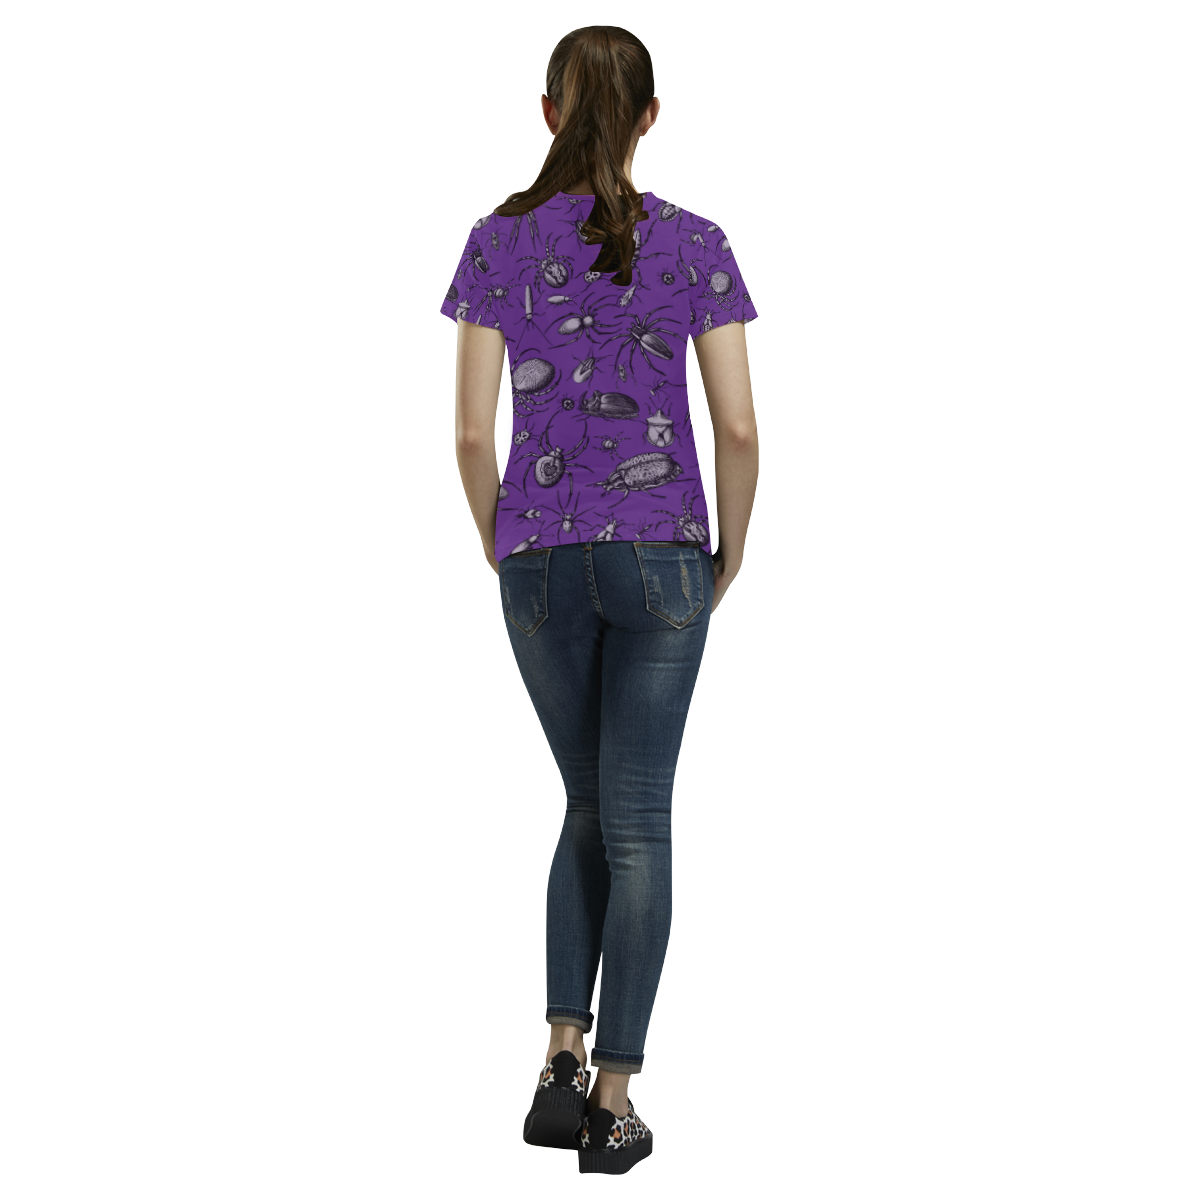 spiders creepy crawlers insects purple halloween All Over Print T-Shirt for Women (USA Size) (Model T40)